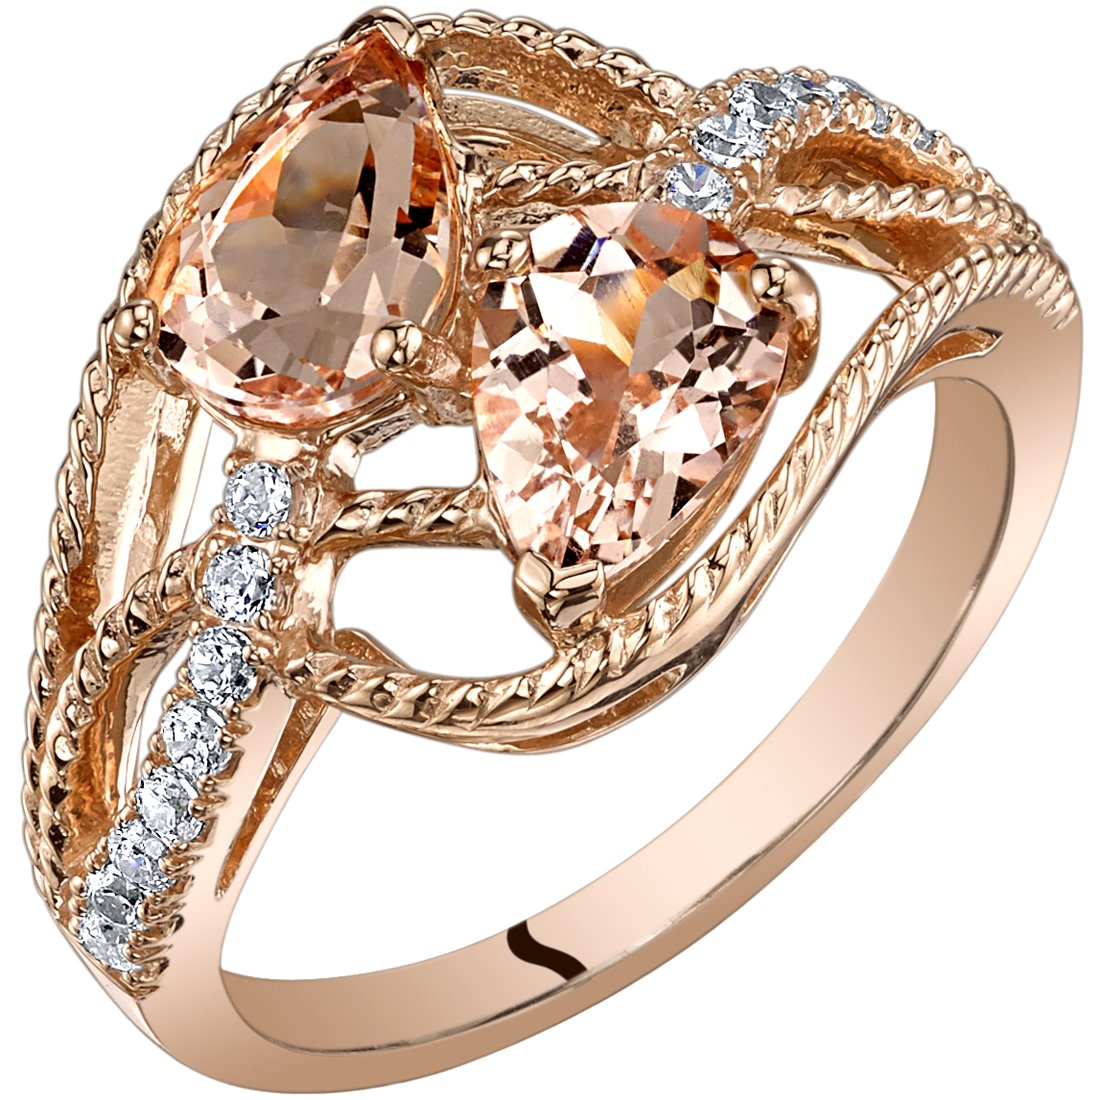 14K Rose Gold Two Stone Morganite Ring Pear Shape 1.50 Carats size 8 by Peora